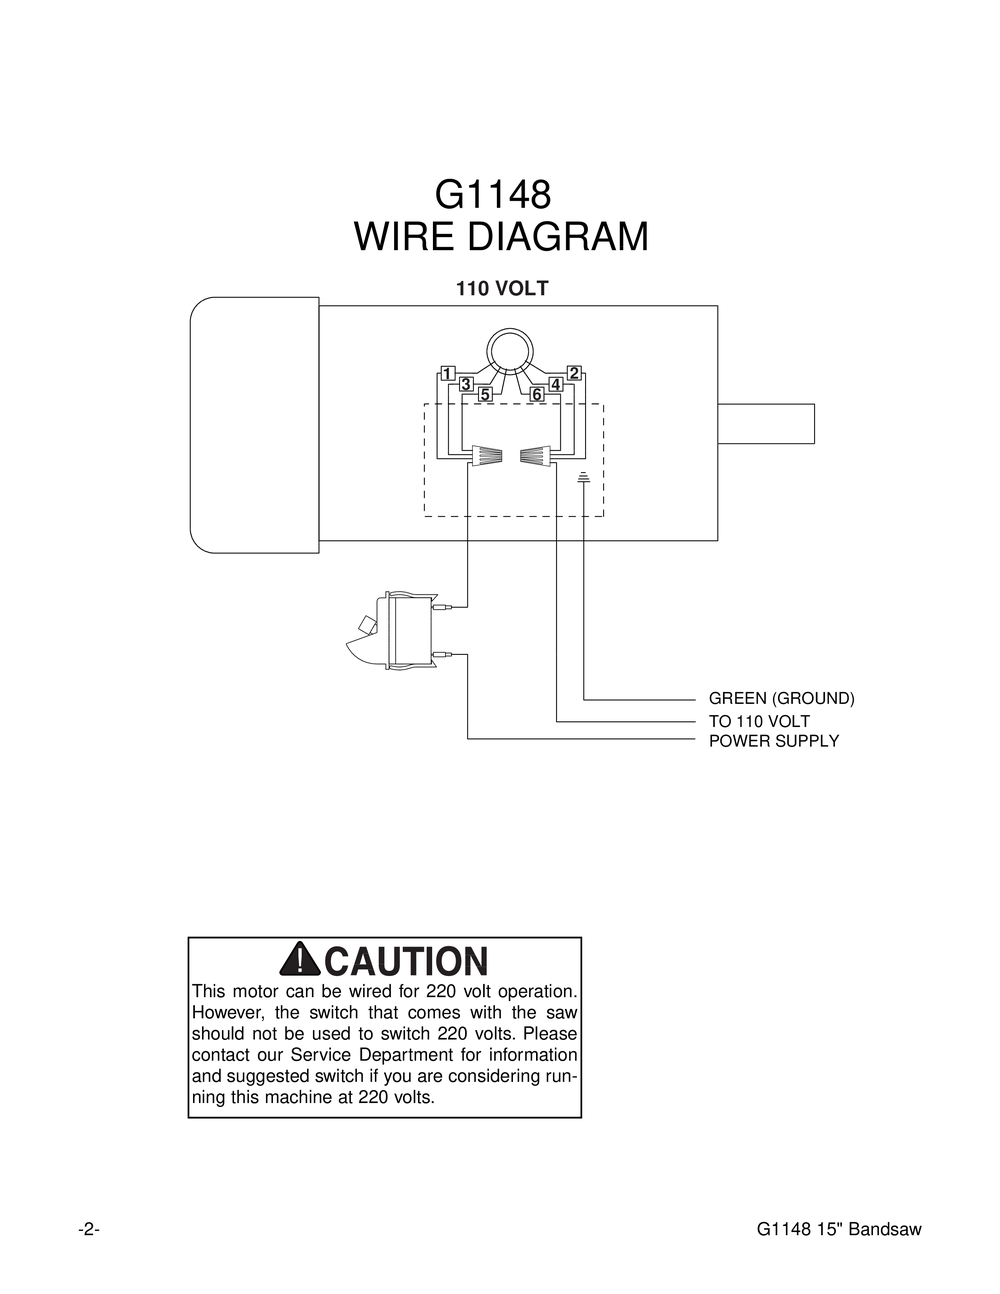 g1148_pl_2_1000 grizzly 16 bandsaw for sale wiring diagrams wiring diagrams lcat24 wiring diagram at gsmx.co